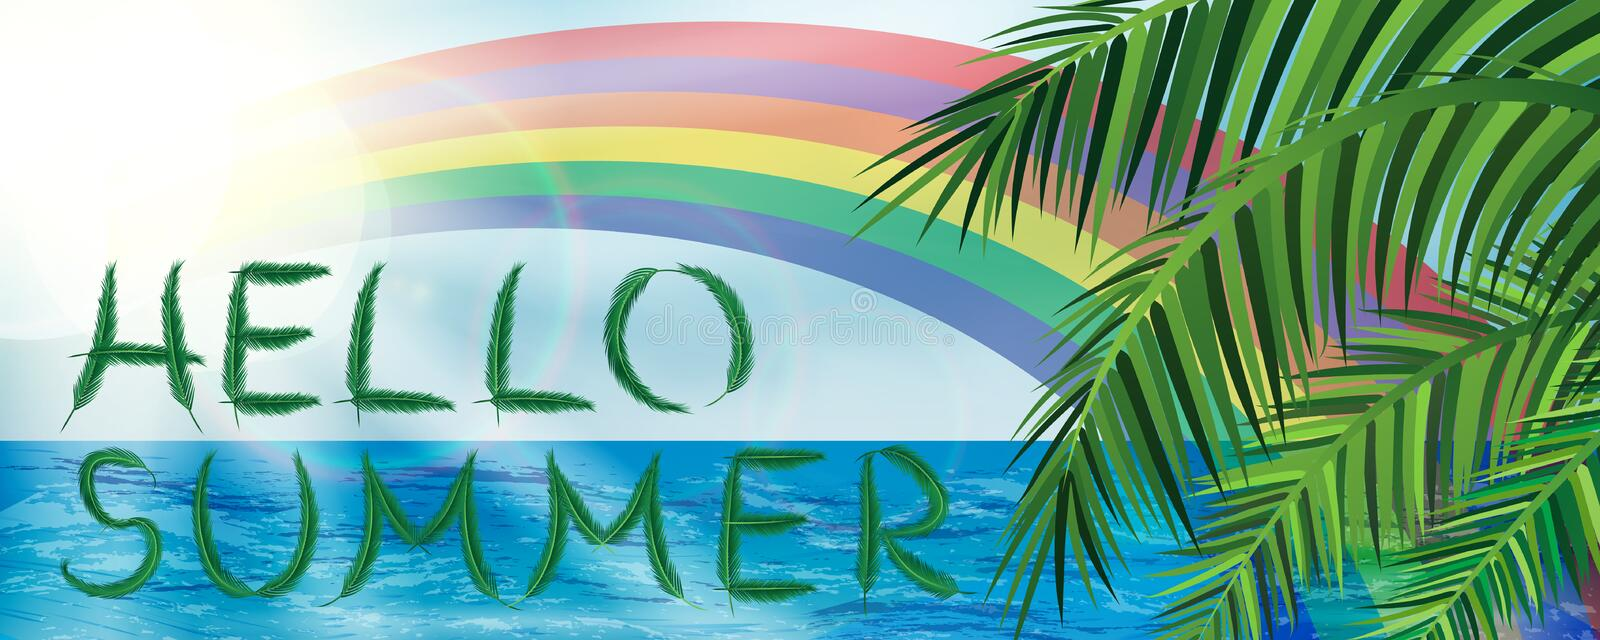 Download Hello Summer Banner With Palm Leaves And Rainbow On Sky And Ocean  Background Stock Vector